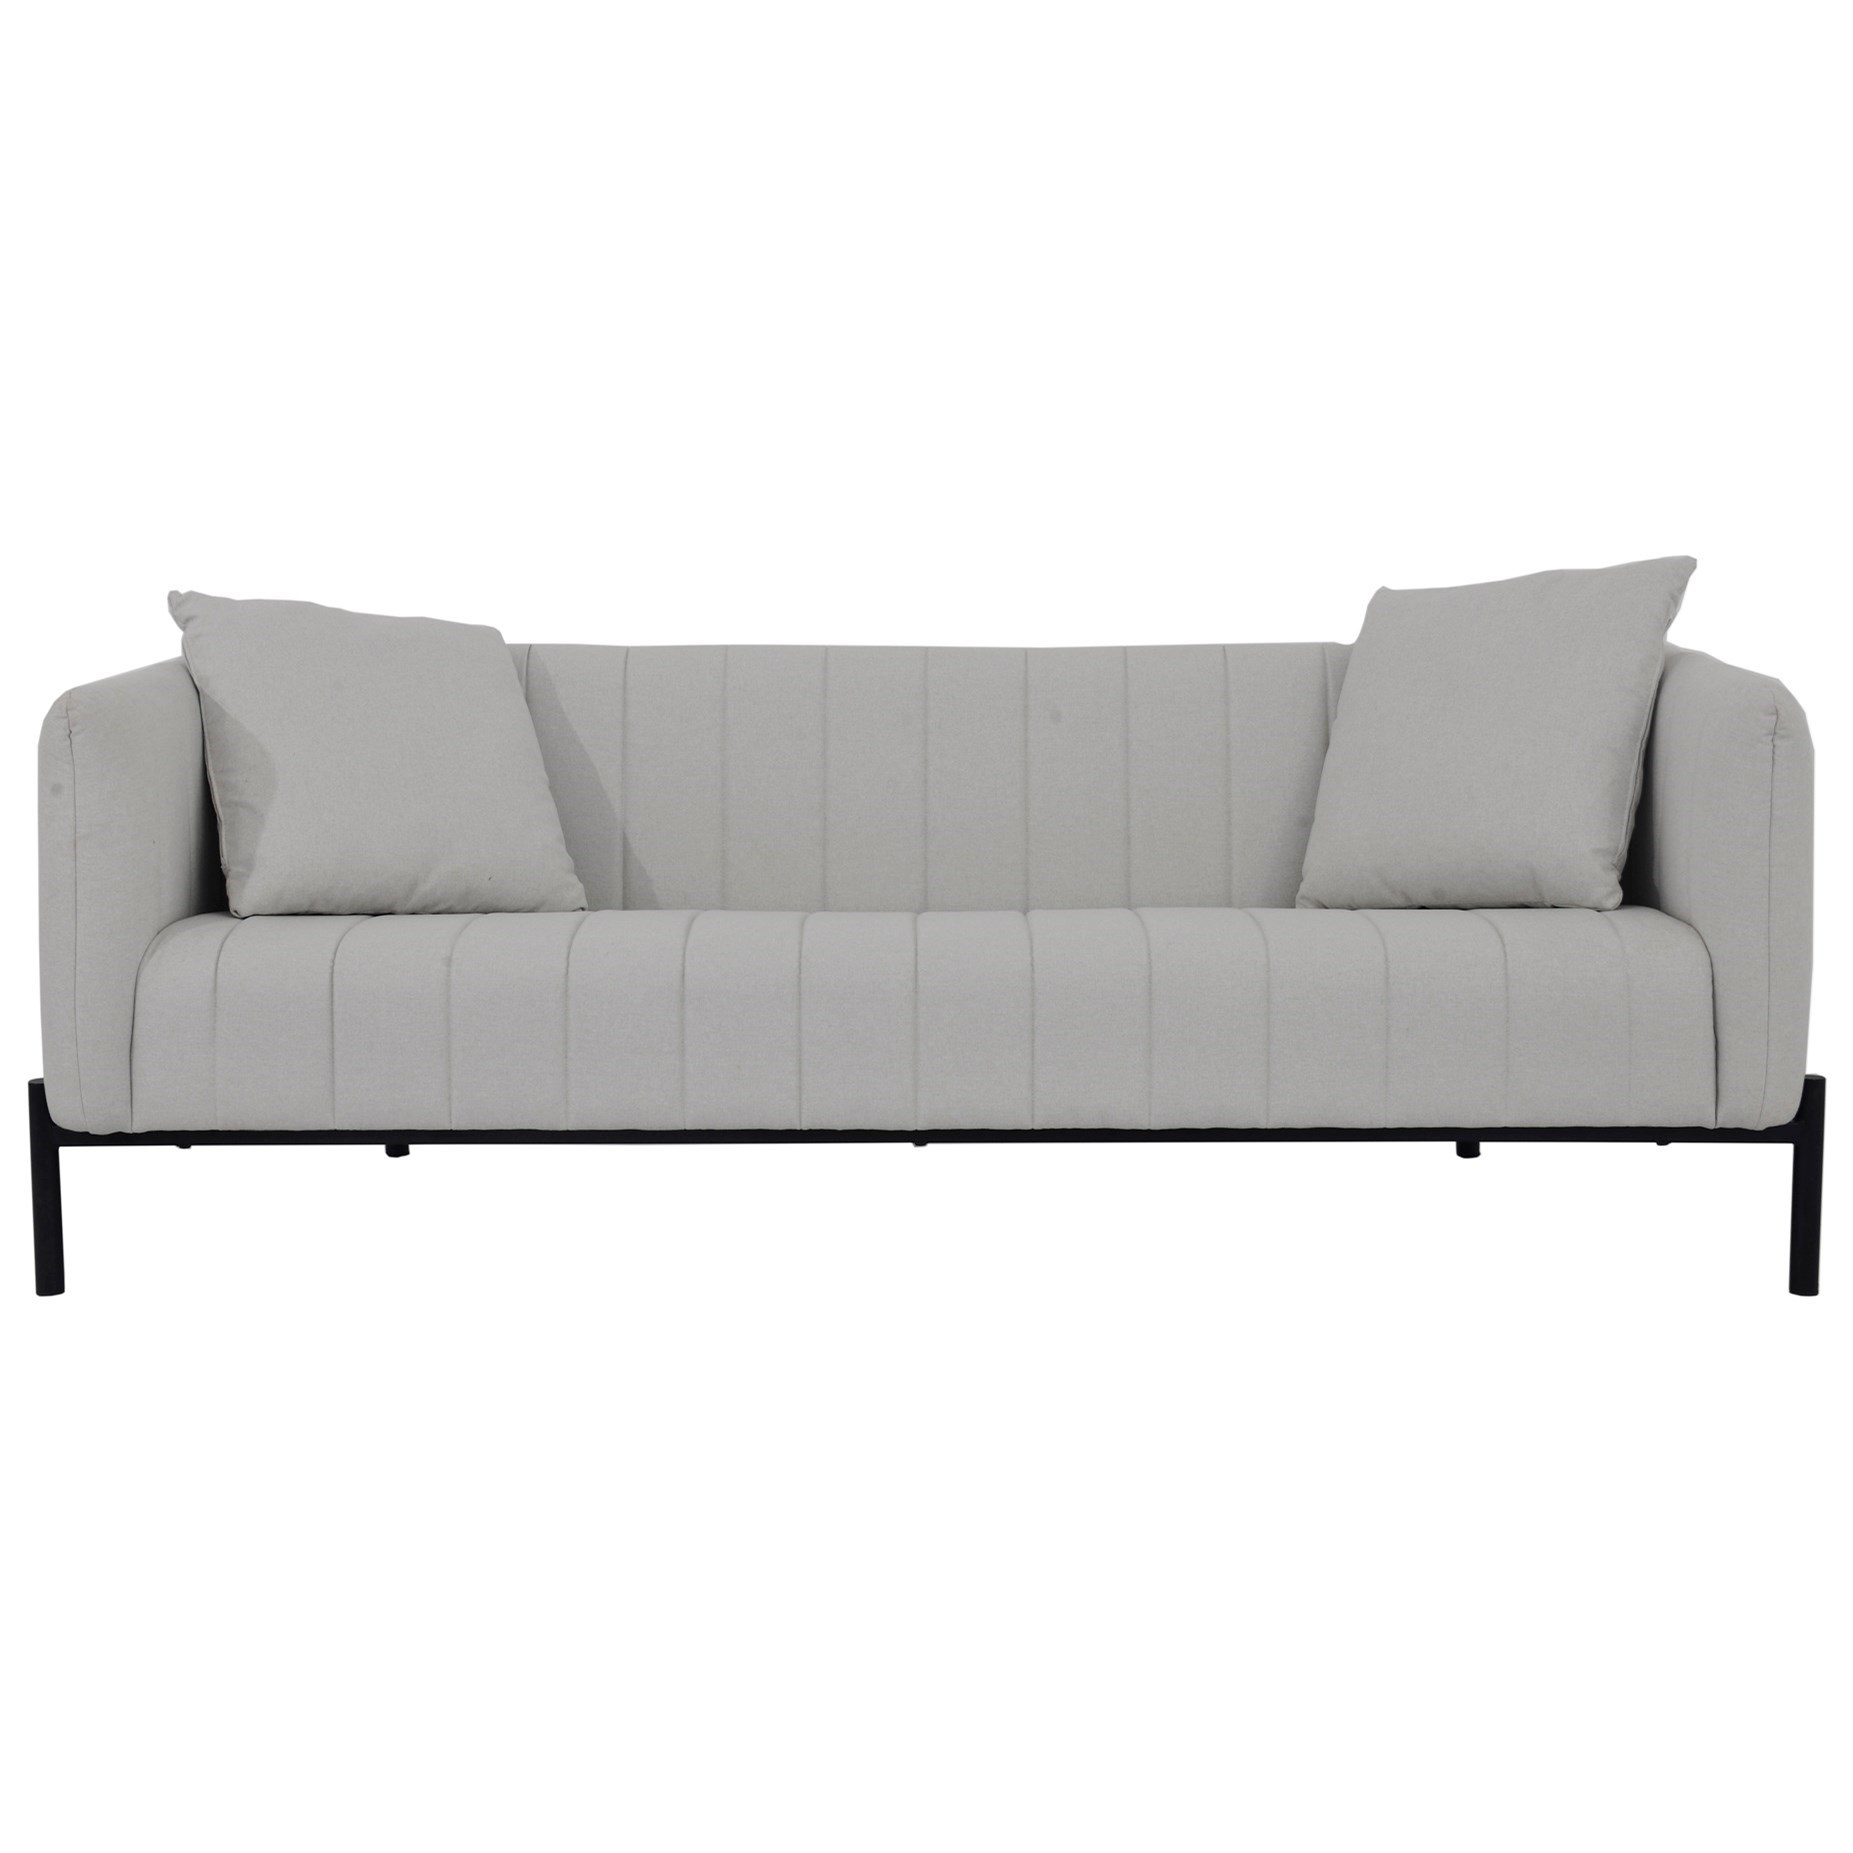 Jaxon Sofa by Moe's Home Collection at Stoney Creek Furniture